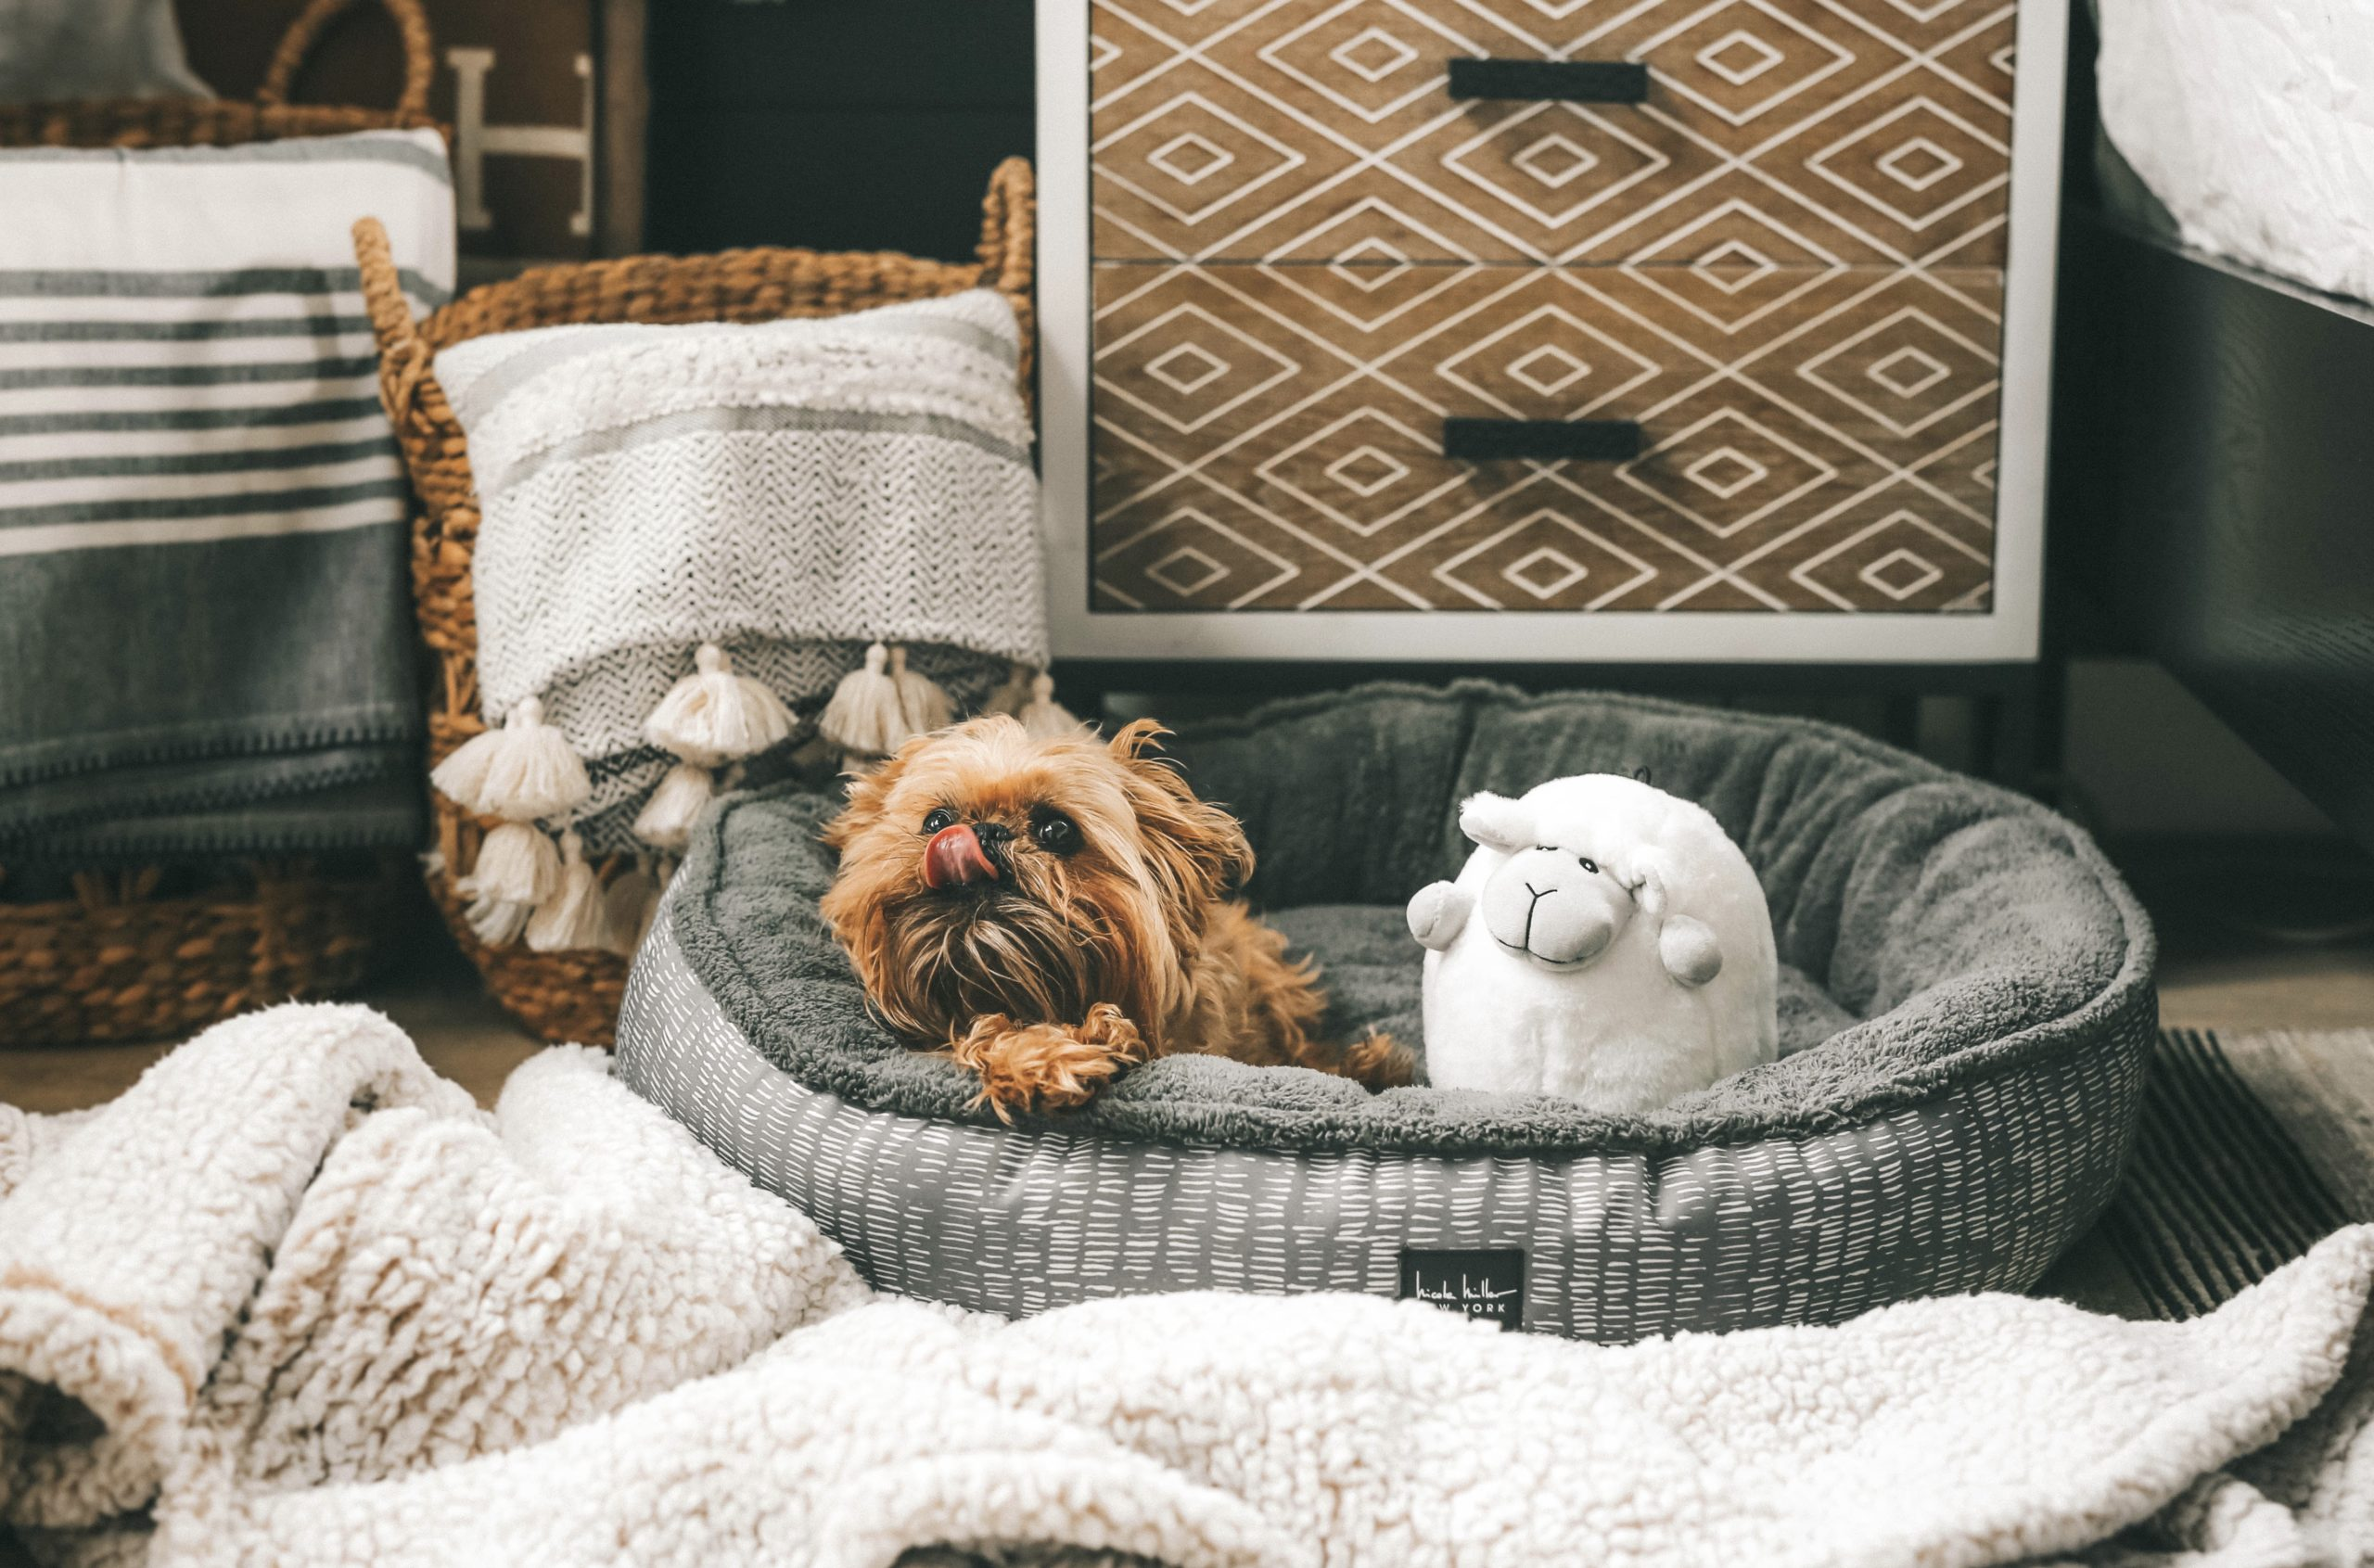 How to Pamper Your Pet by popular Nashville life and style blog, Dressed to Kill: image of a dog, sitting in a grey dog bed with a sheep toy next to some various dog signs from Tuesday Morning.